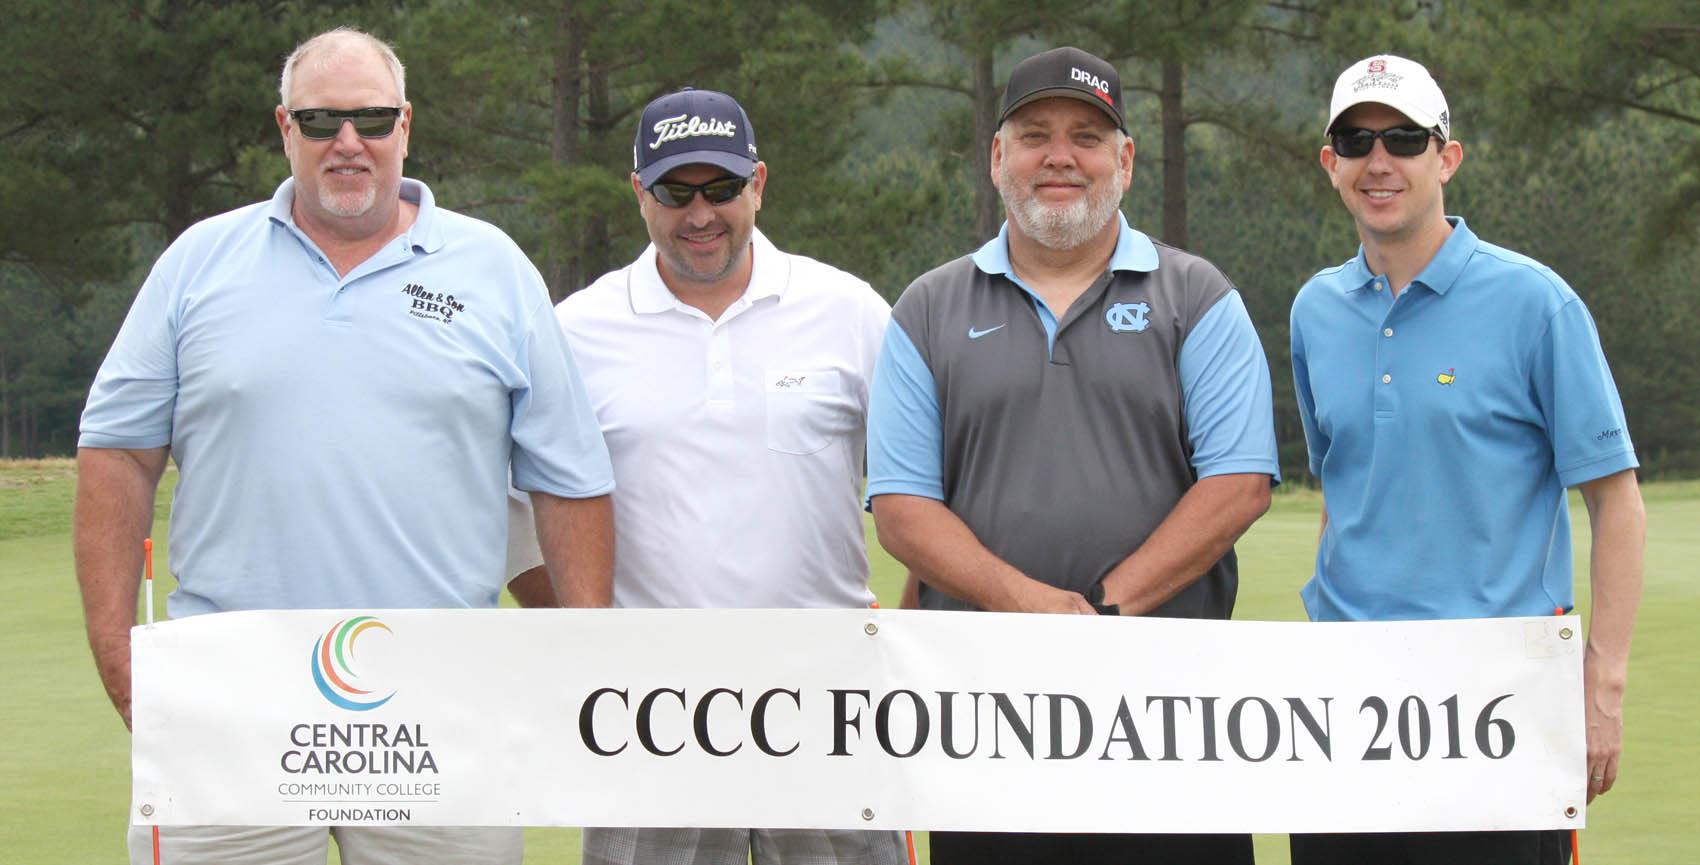 Click to enlarge,  Members of the second flight winning team in the Central Carolina Community College Foundation Chatham Golf Classic were Lee Shanklin, Bob Harris, Steve Womble, and Jimmy Stubbs. For information about the Foundation, donating to it, establishing a scholarship, or other fund-raising events, contact Emily Hare, executive director of the CCCC Foundation, 919-718-7230, or ehare@cccc.edu. Information is also available at its website, www.cccc.edu/foundation.